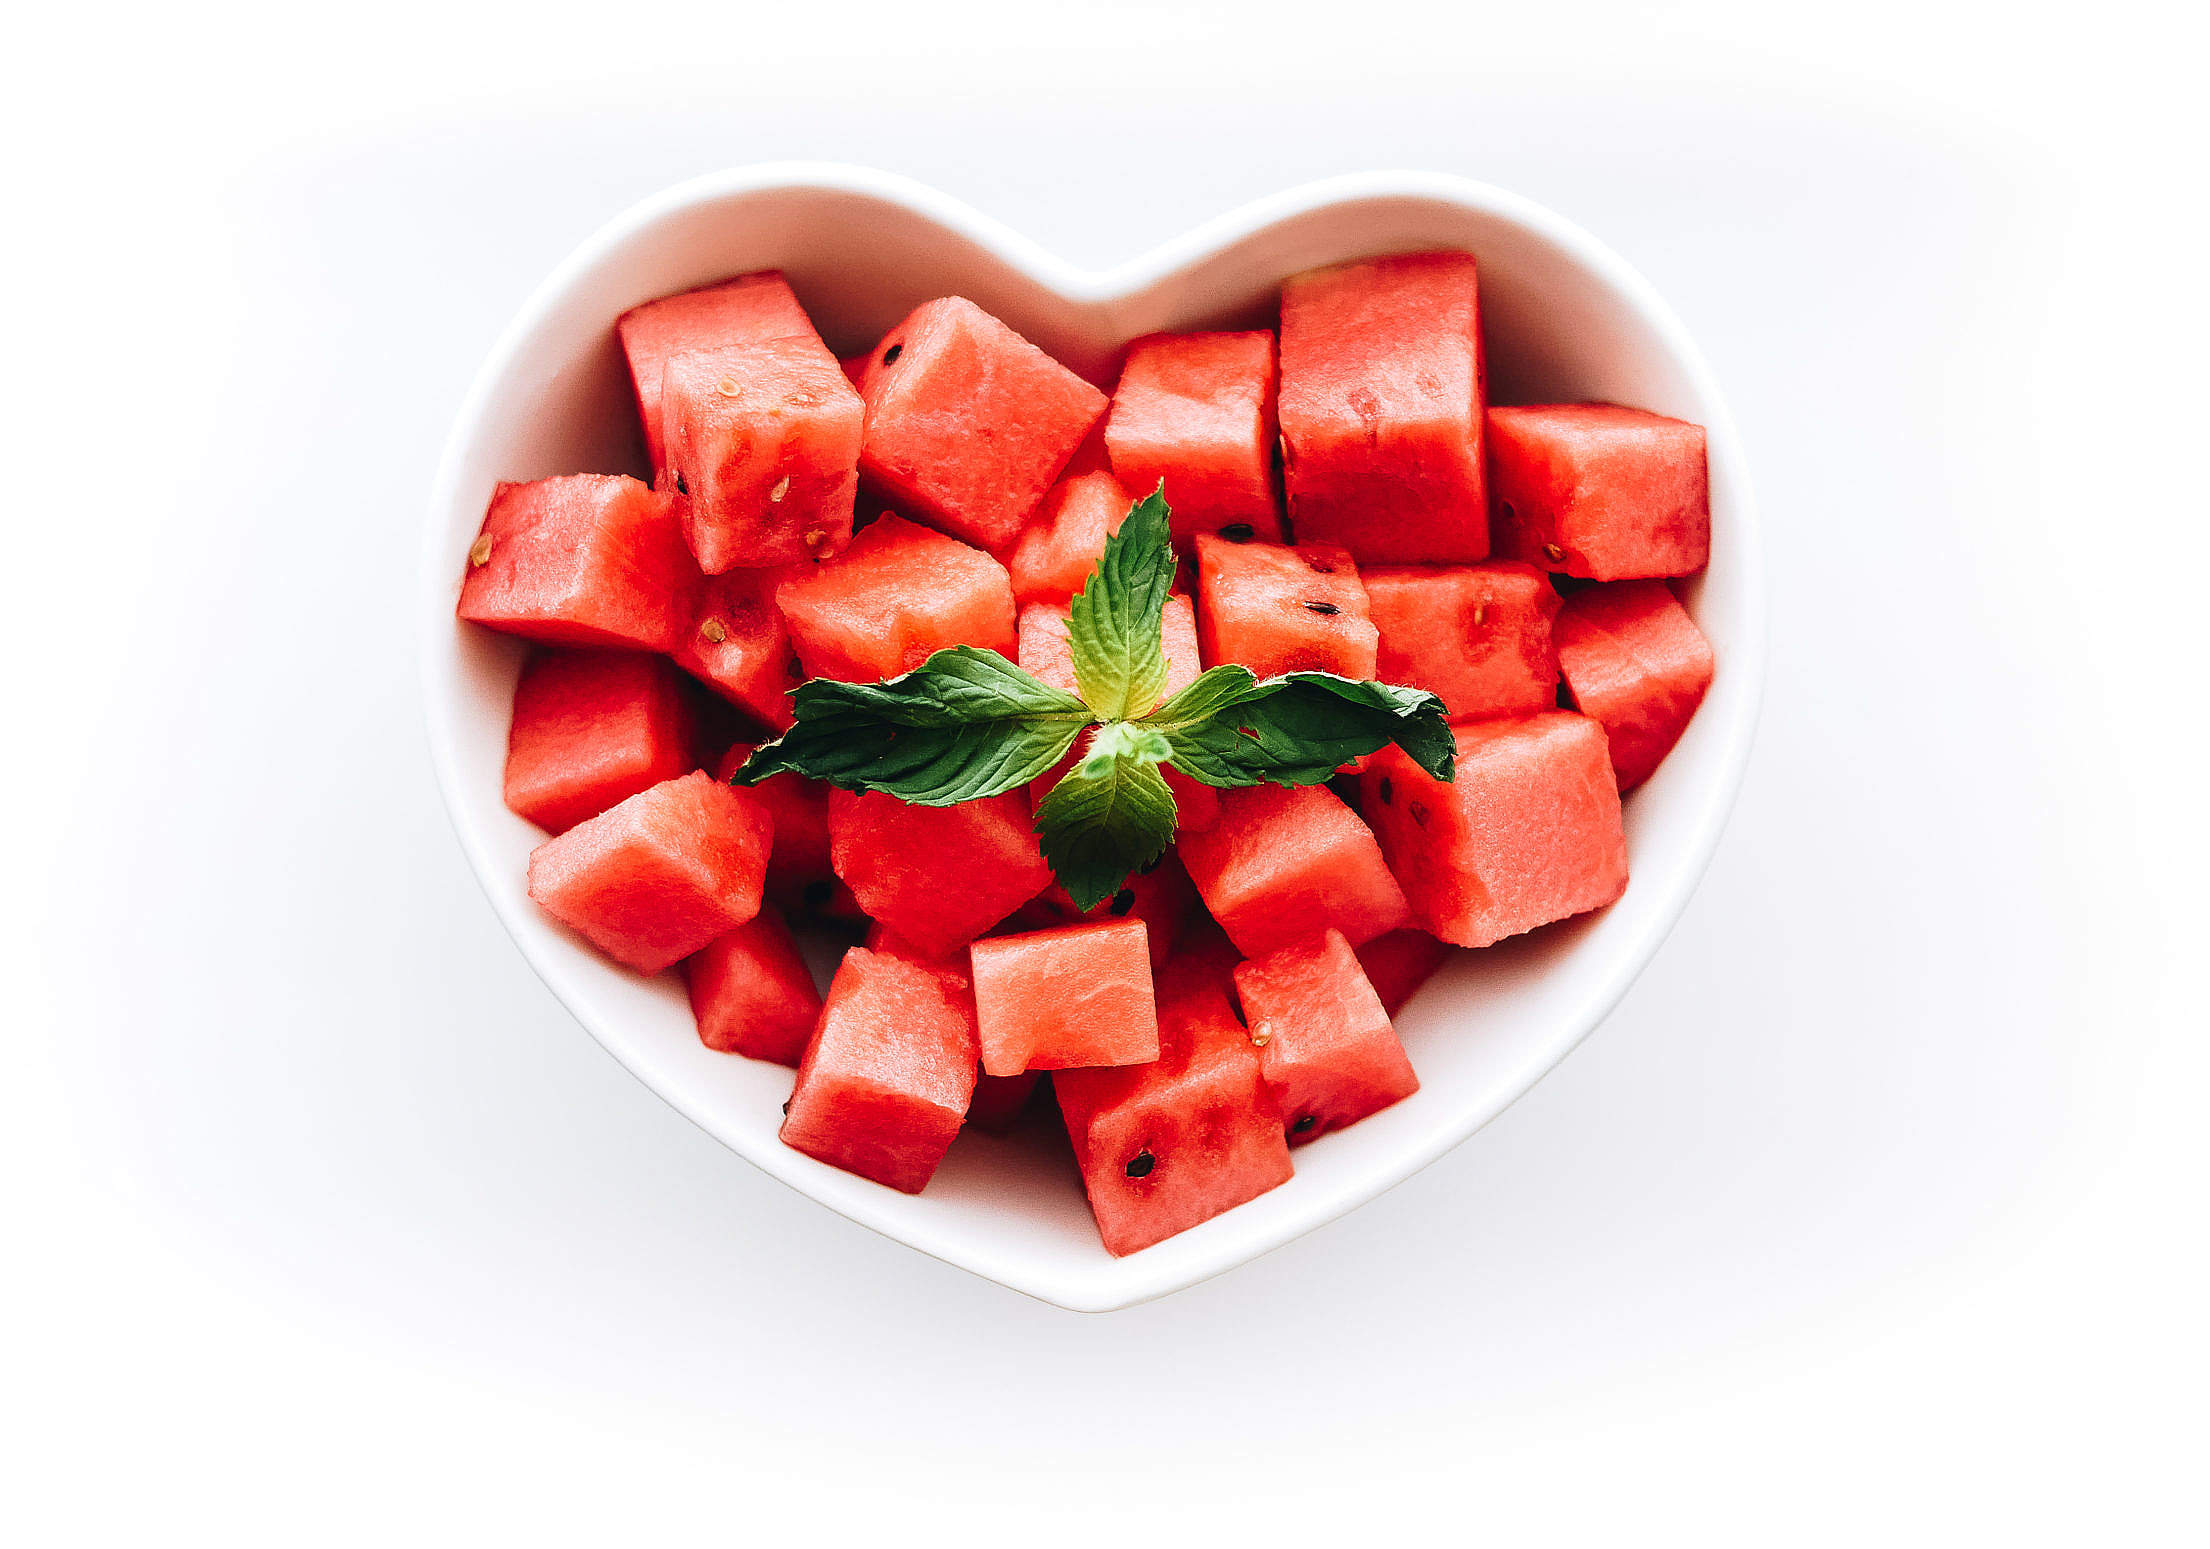 Fresh Watermelon in Heart-Shaped Bowl Free Stock Photo